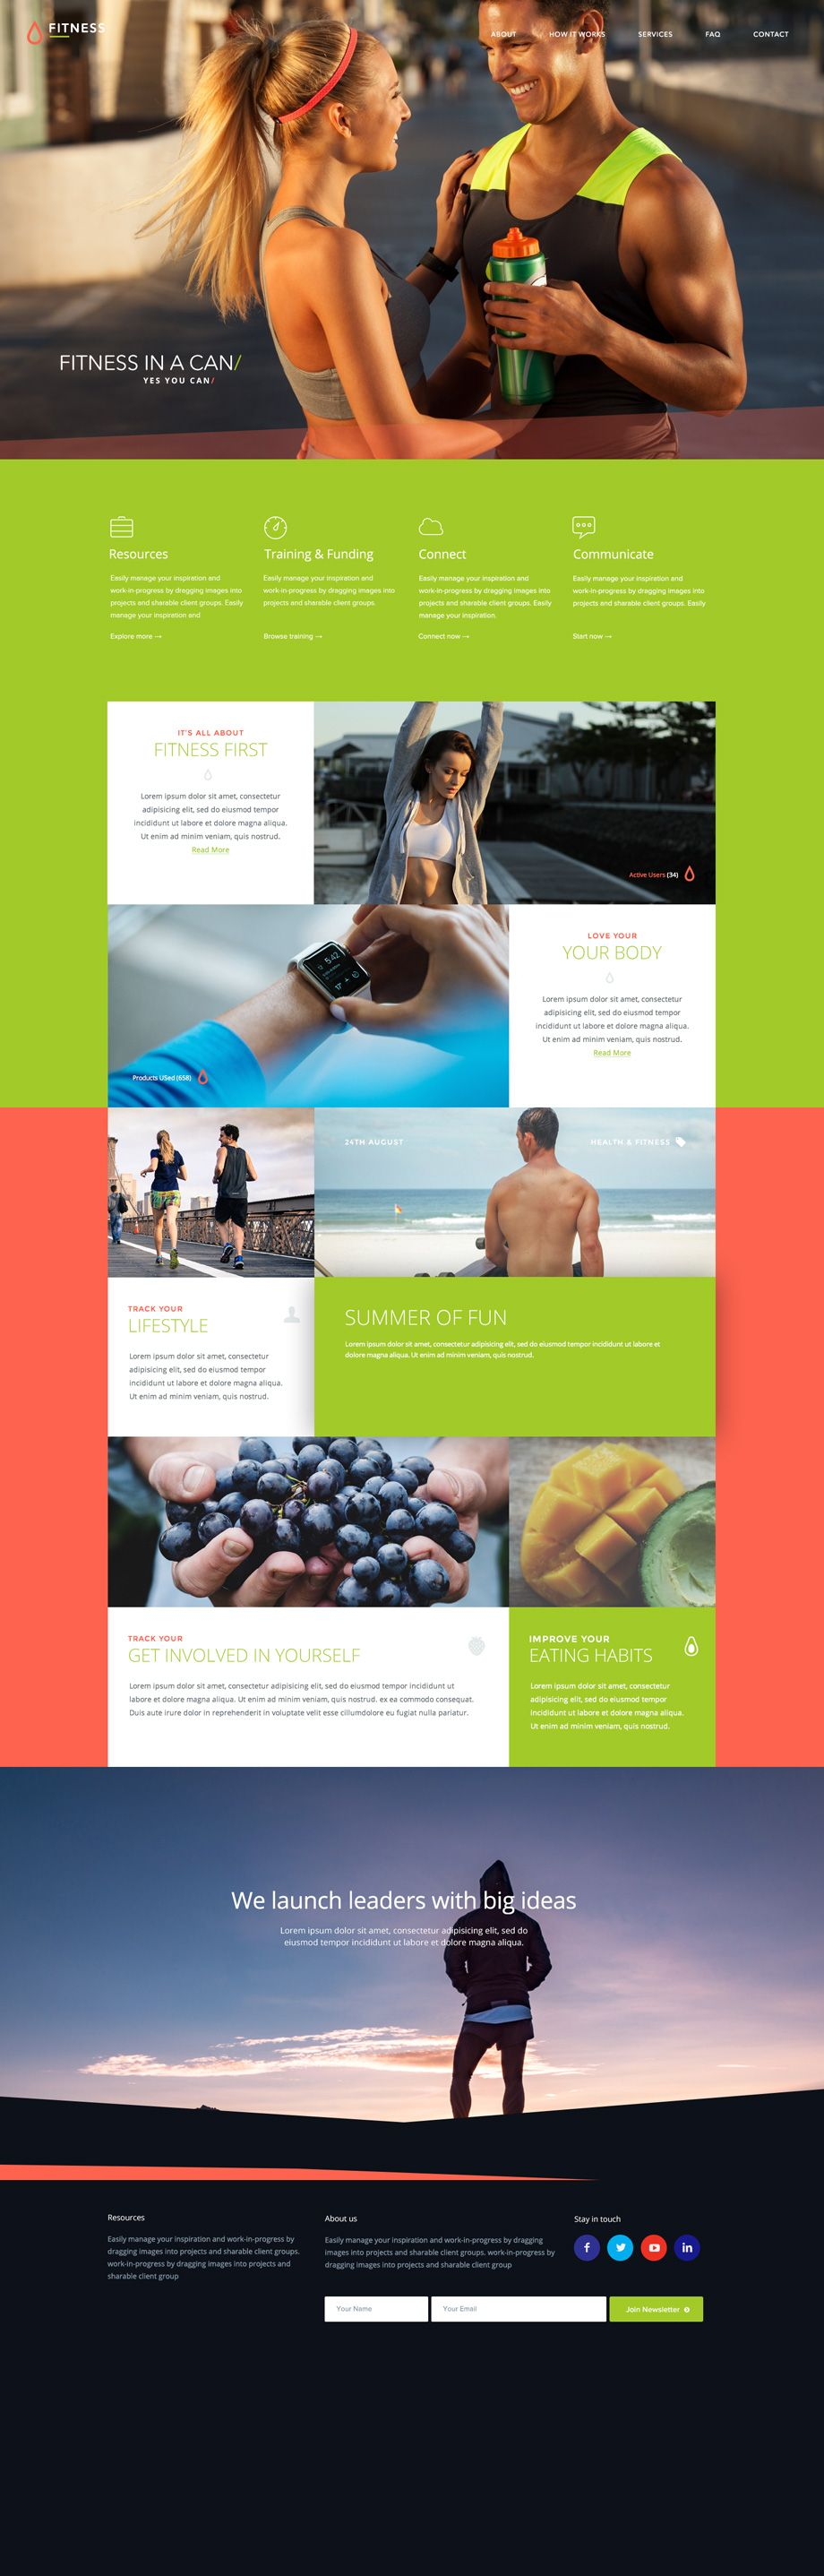 free download fitness free photoshop psd template web design